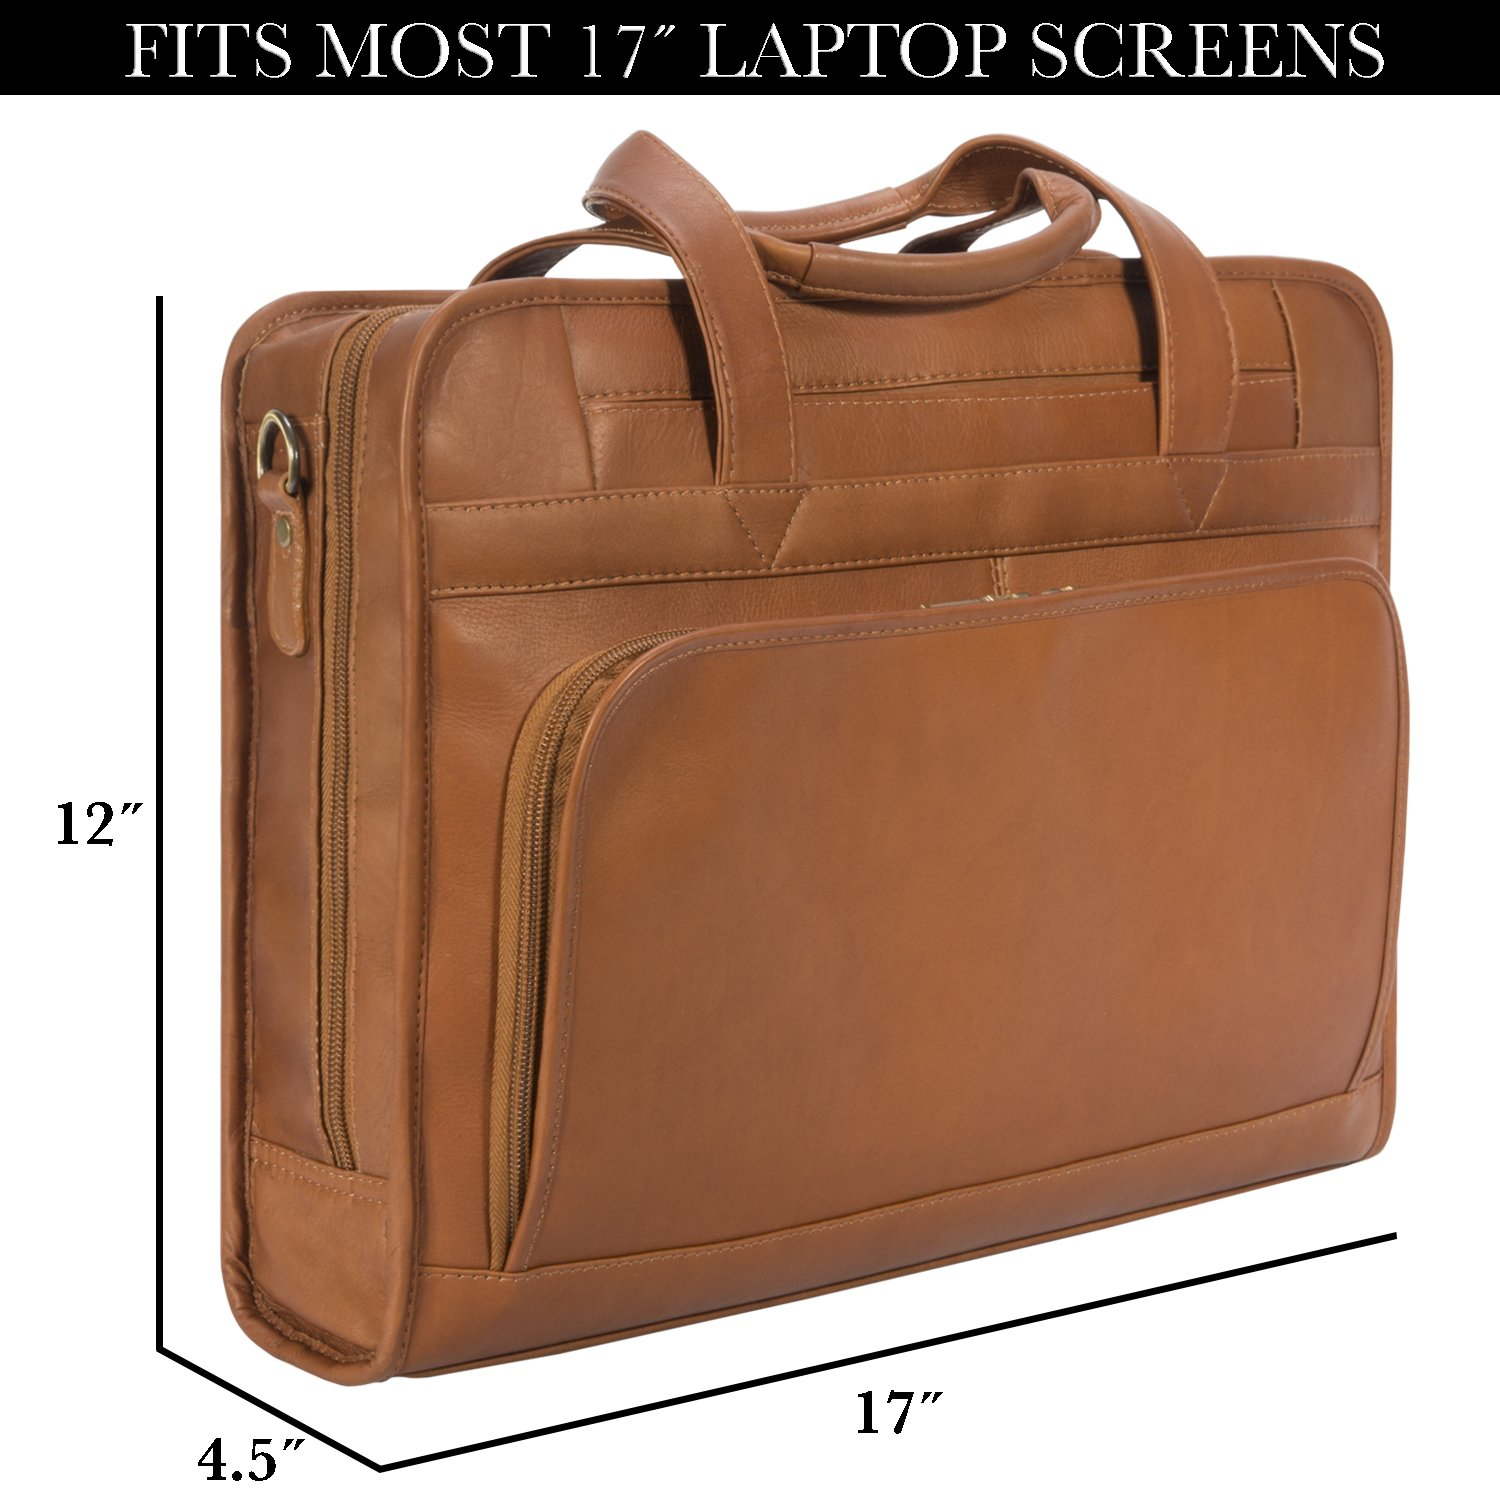 Muiska Leather Top-Zip 17 Inch Laptop Briefcase, Saddle, One Size by Muiska (Image #2)